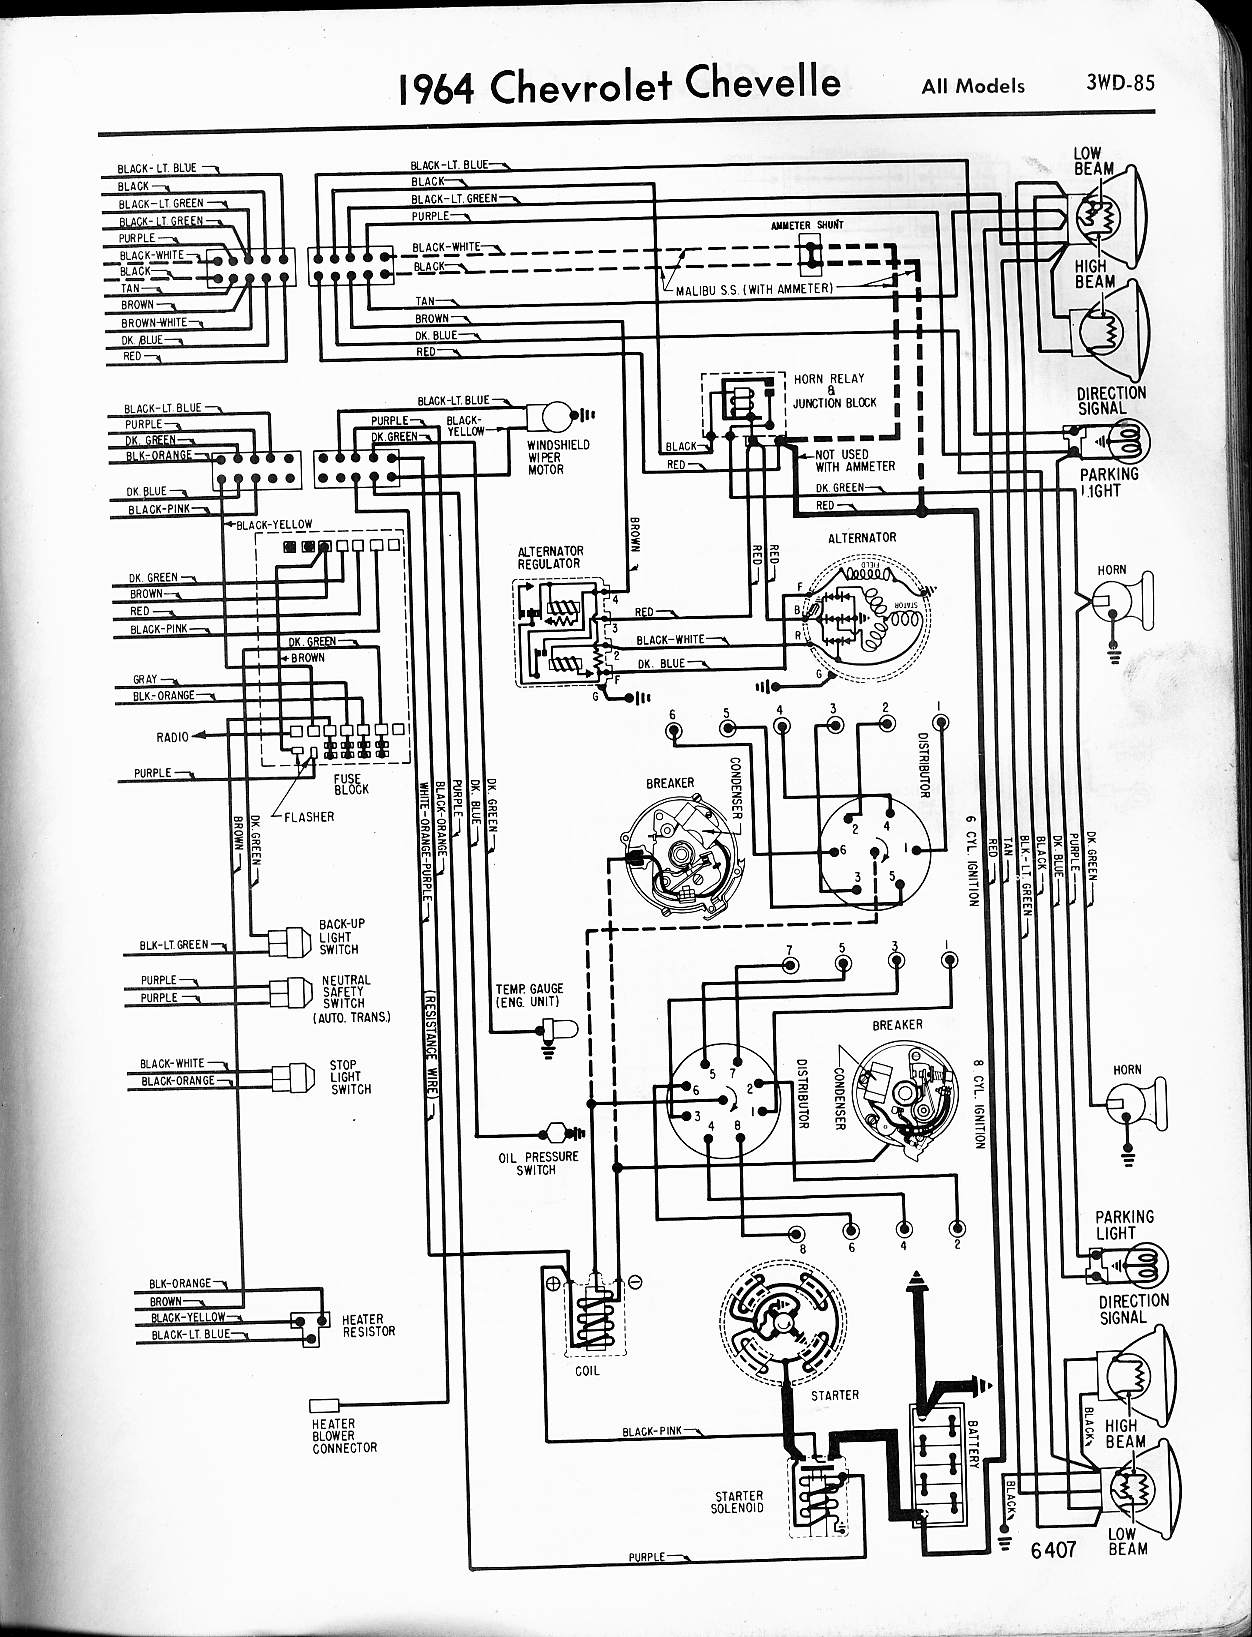 MWireChev64_3WD 085 57 65 chevy wiring diagrams 1964 falcon wiring diagram at nearapp.co